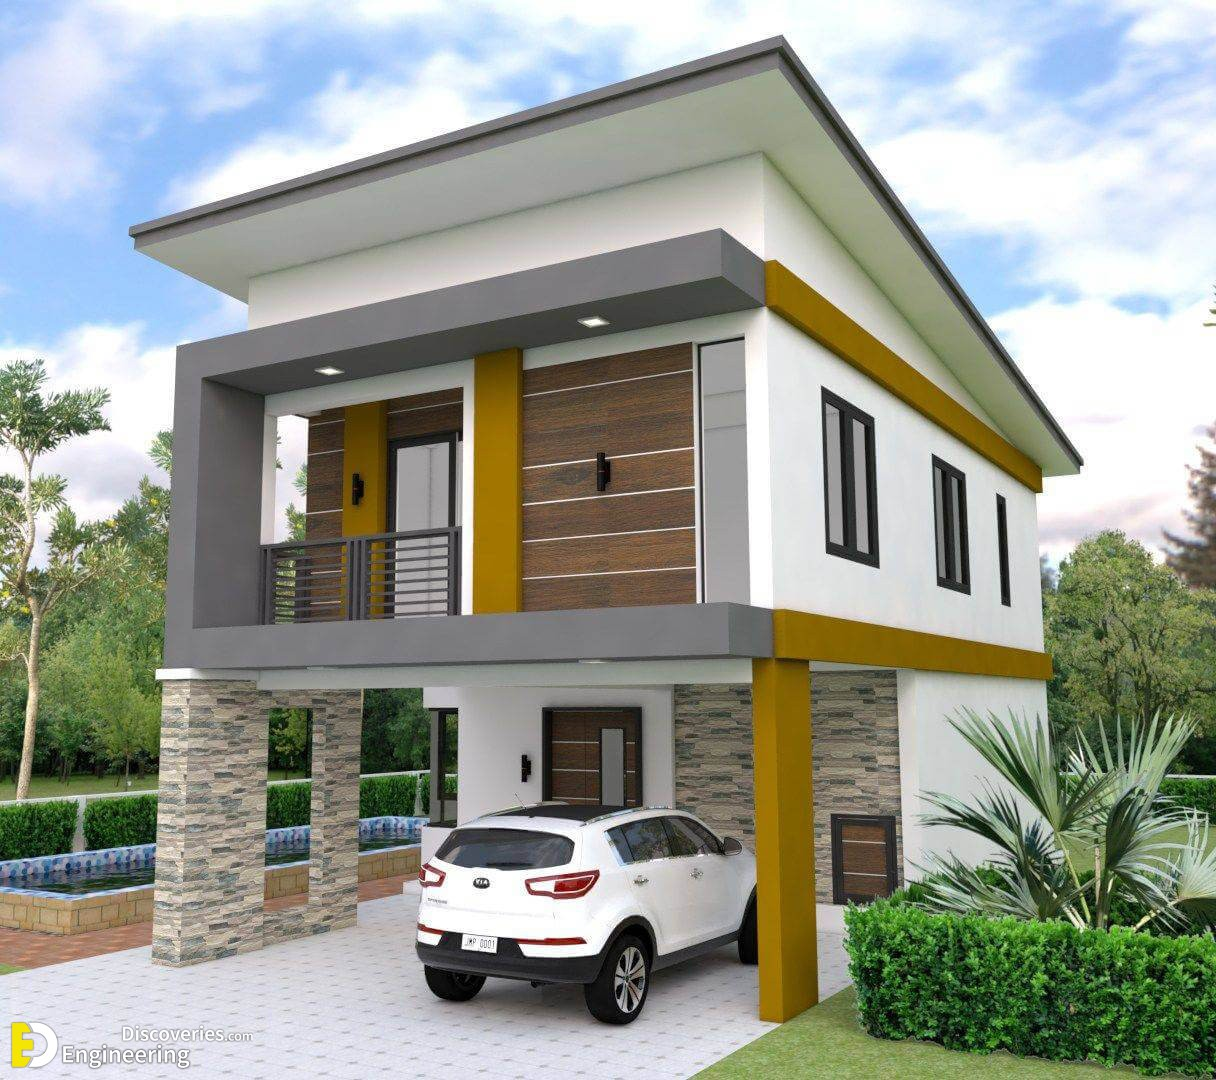 Two Storey House Plan With 3 Bedrooms And 2